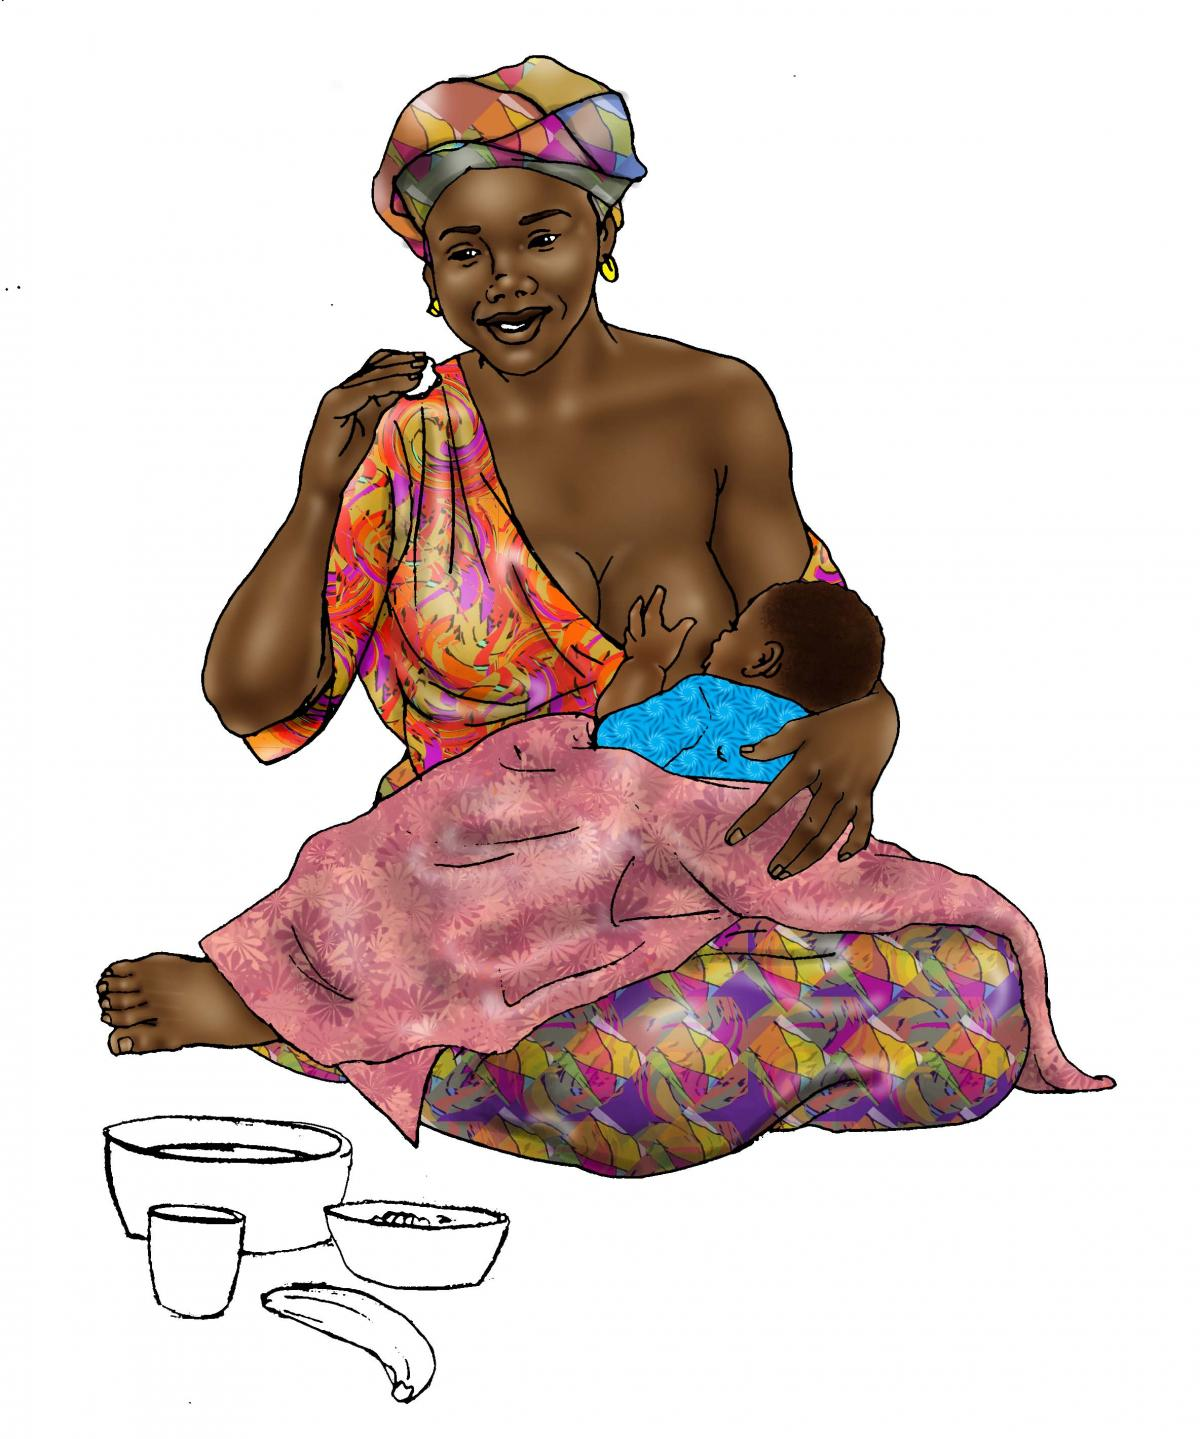 Maternal Nutrition - Breastfeeding mother eating - 07 - Non-country specific